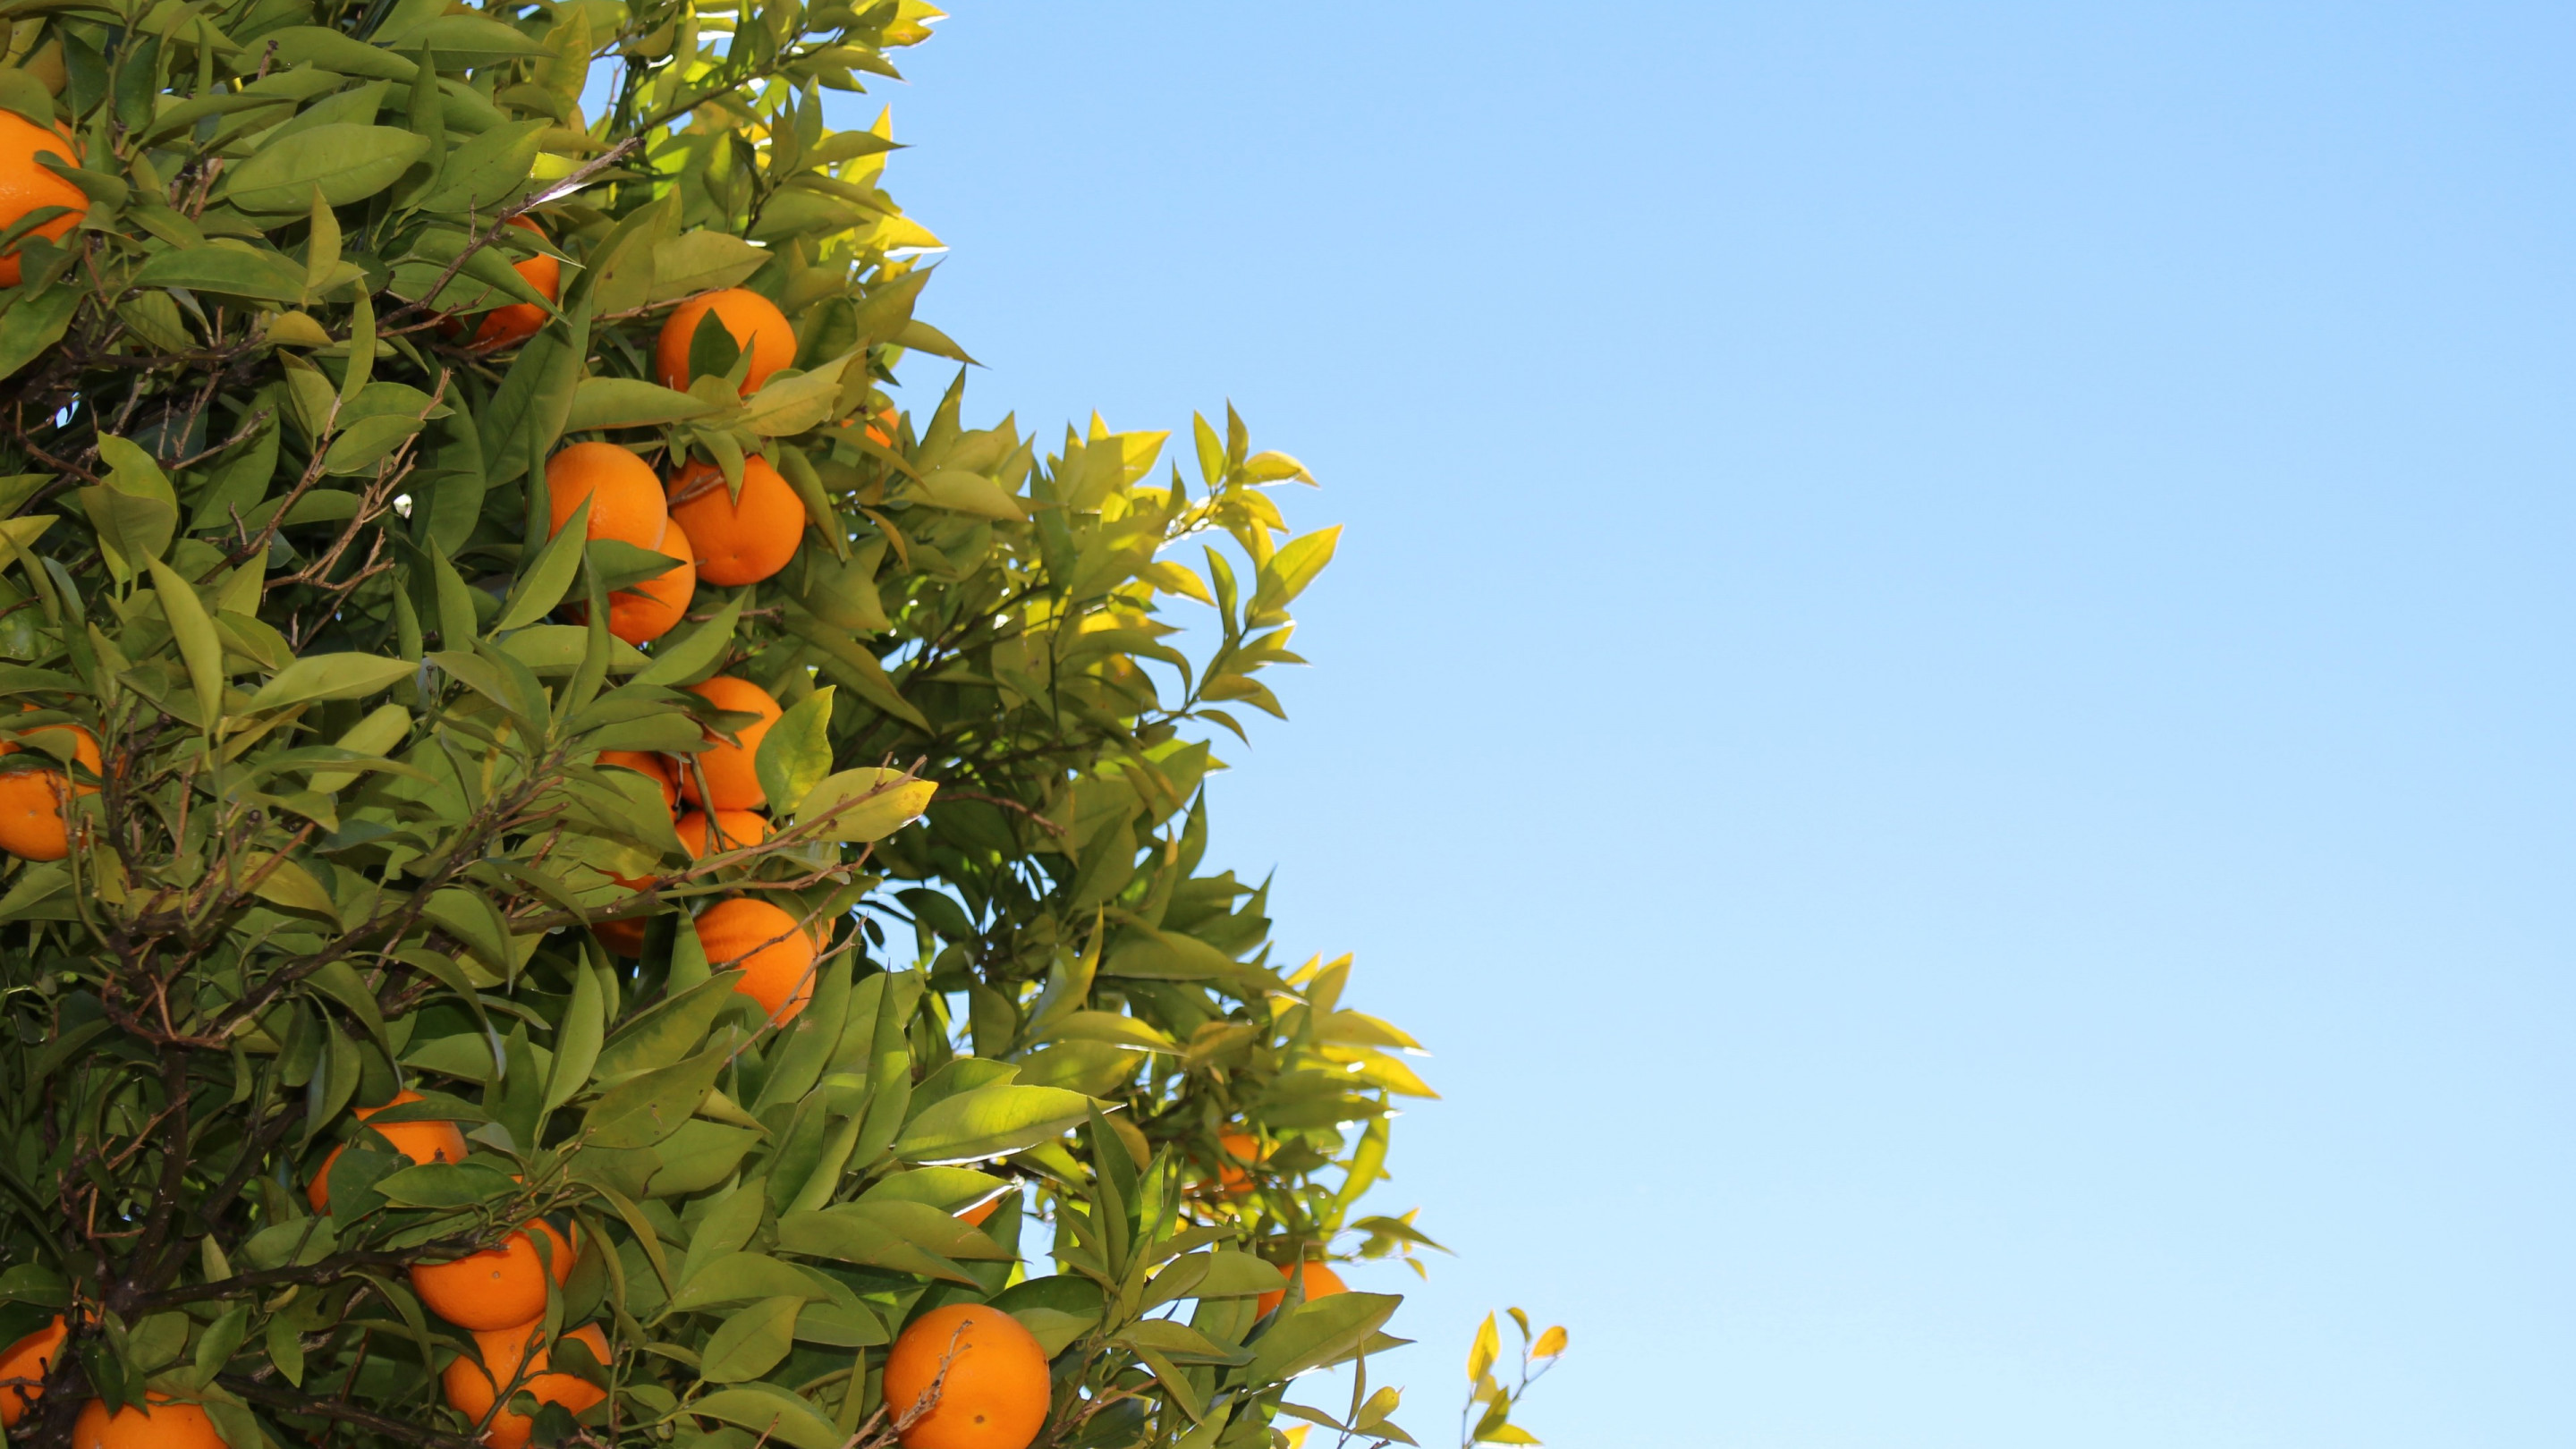 Oranges or clementines in tree wallpaper 2880x1620